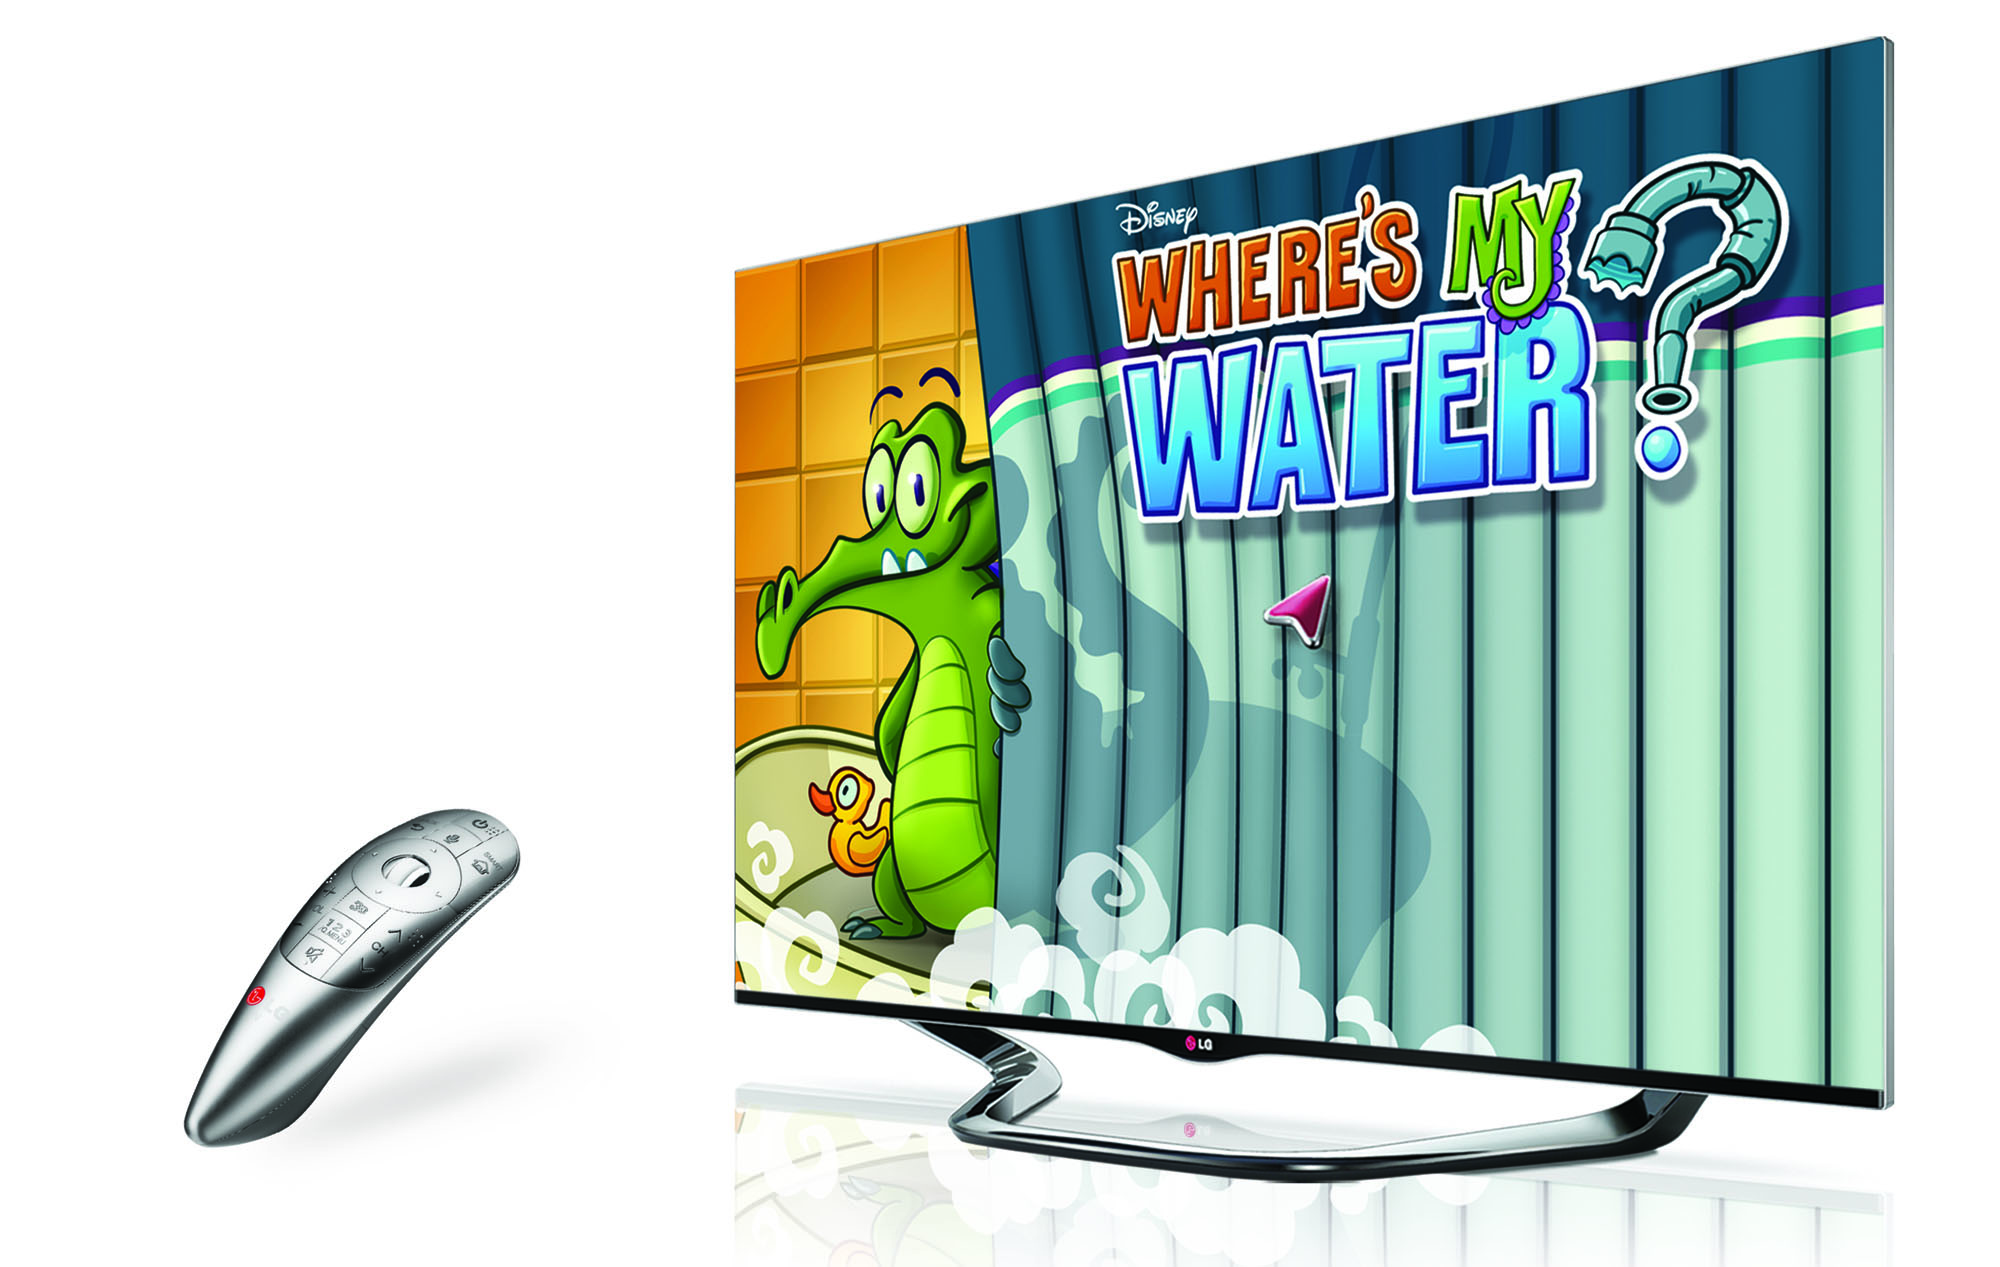 LG Magic Remote and the right-side view of an LG CINEMA 3D SMART TV displaying 'Where's My Water', a game that can be found on the Smart TV's game store